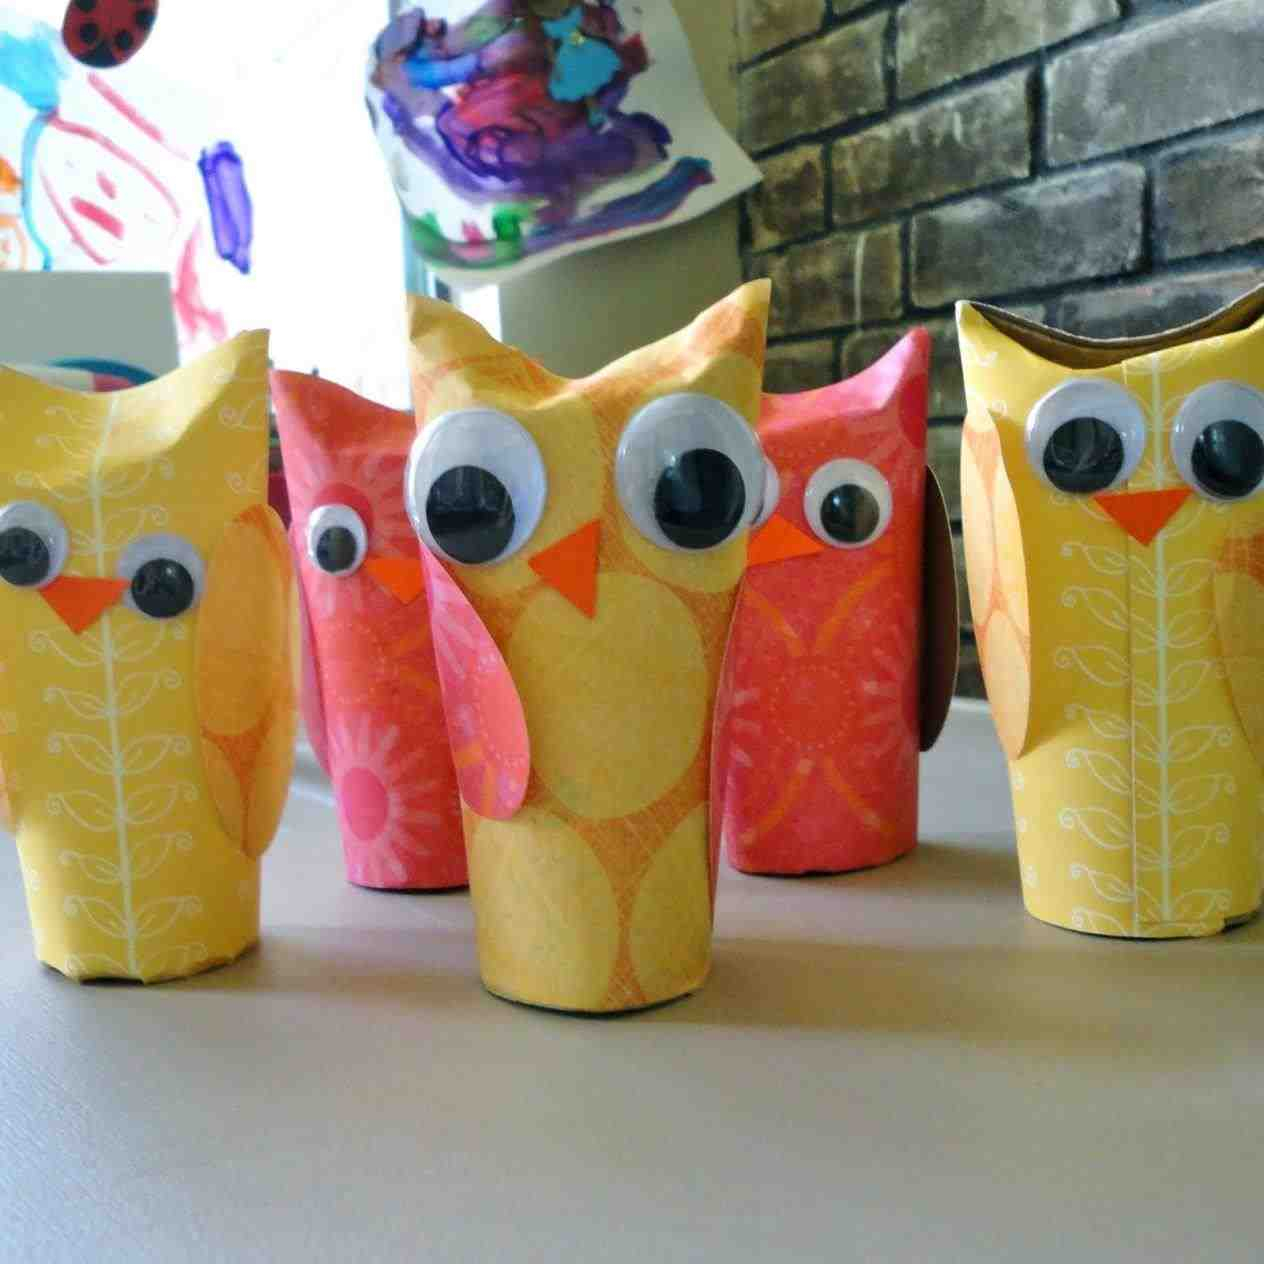 The simple paper owls crafts idea Recycled Paper Owl Super Easy To Make Just Use A Recycled Toilet